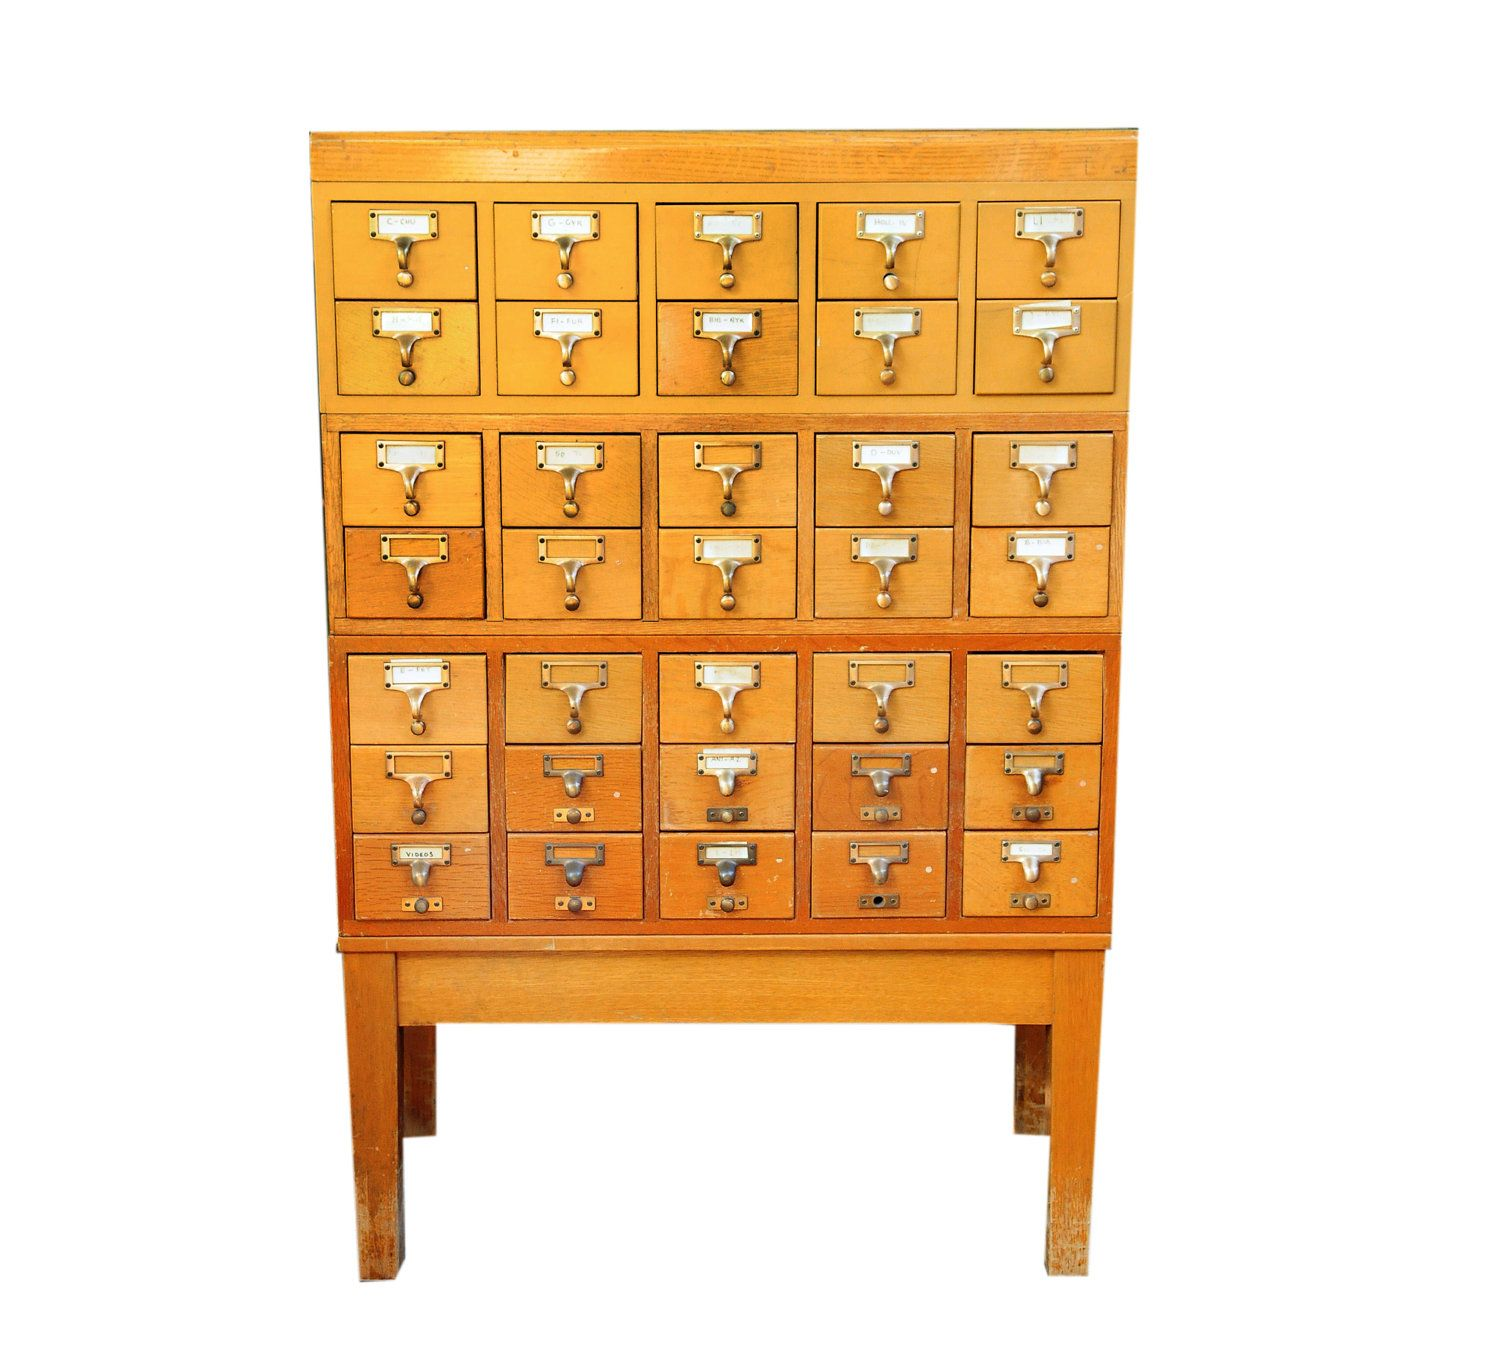 Card catalog cabinet Library 35 drawers with by TheAtomicAttic, $495.00